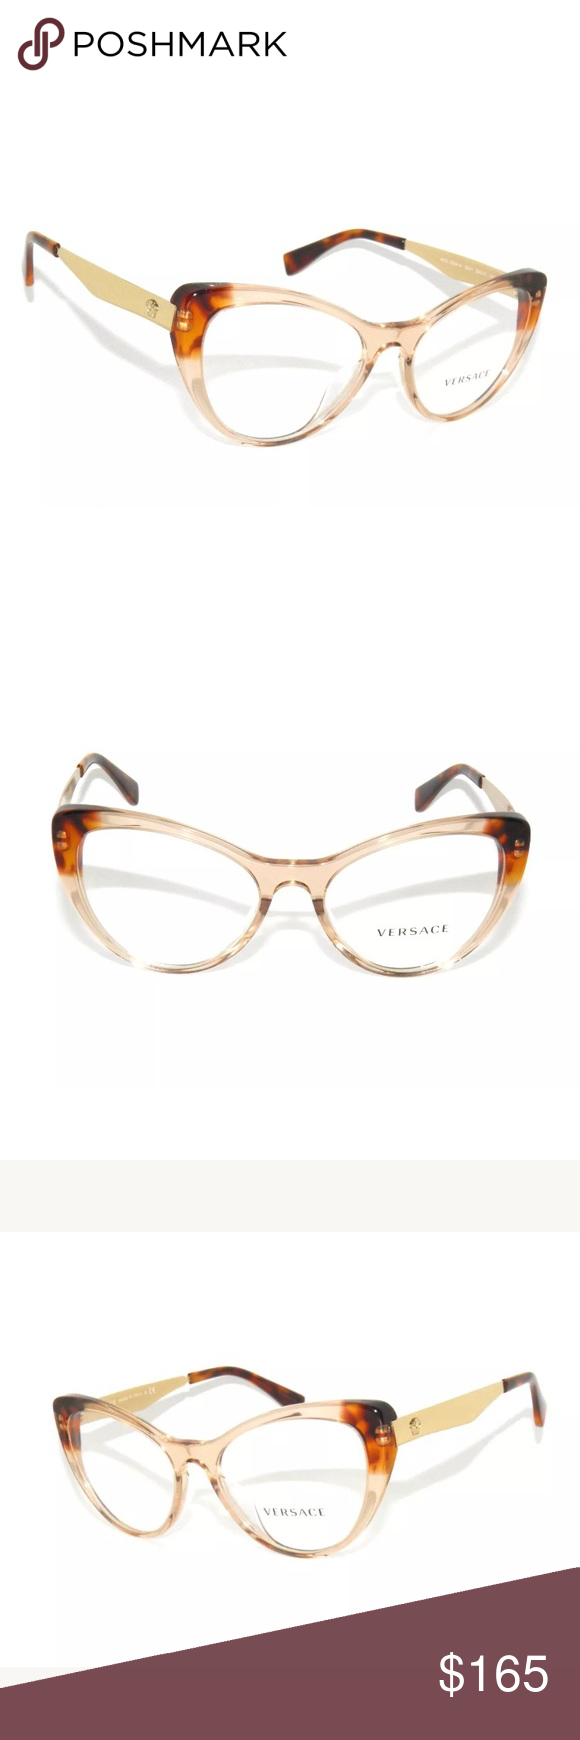 bbdf39a6deb Versace Eyeglasses Havana and Brown 3244 Brand new Comes with Versace case. Authentic  Versace Accessories Glasses